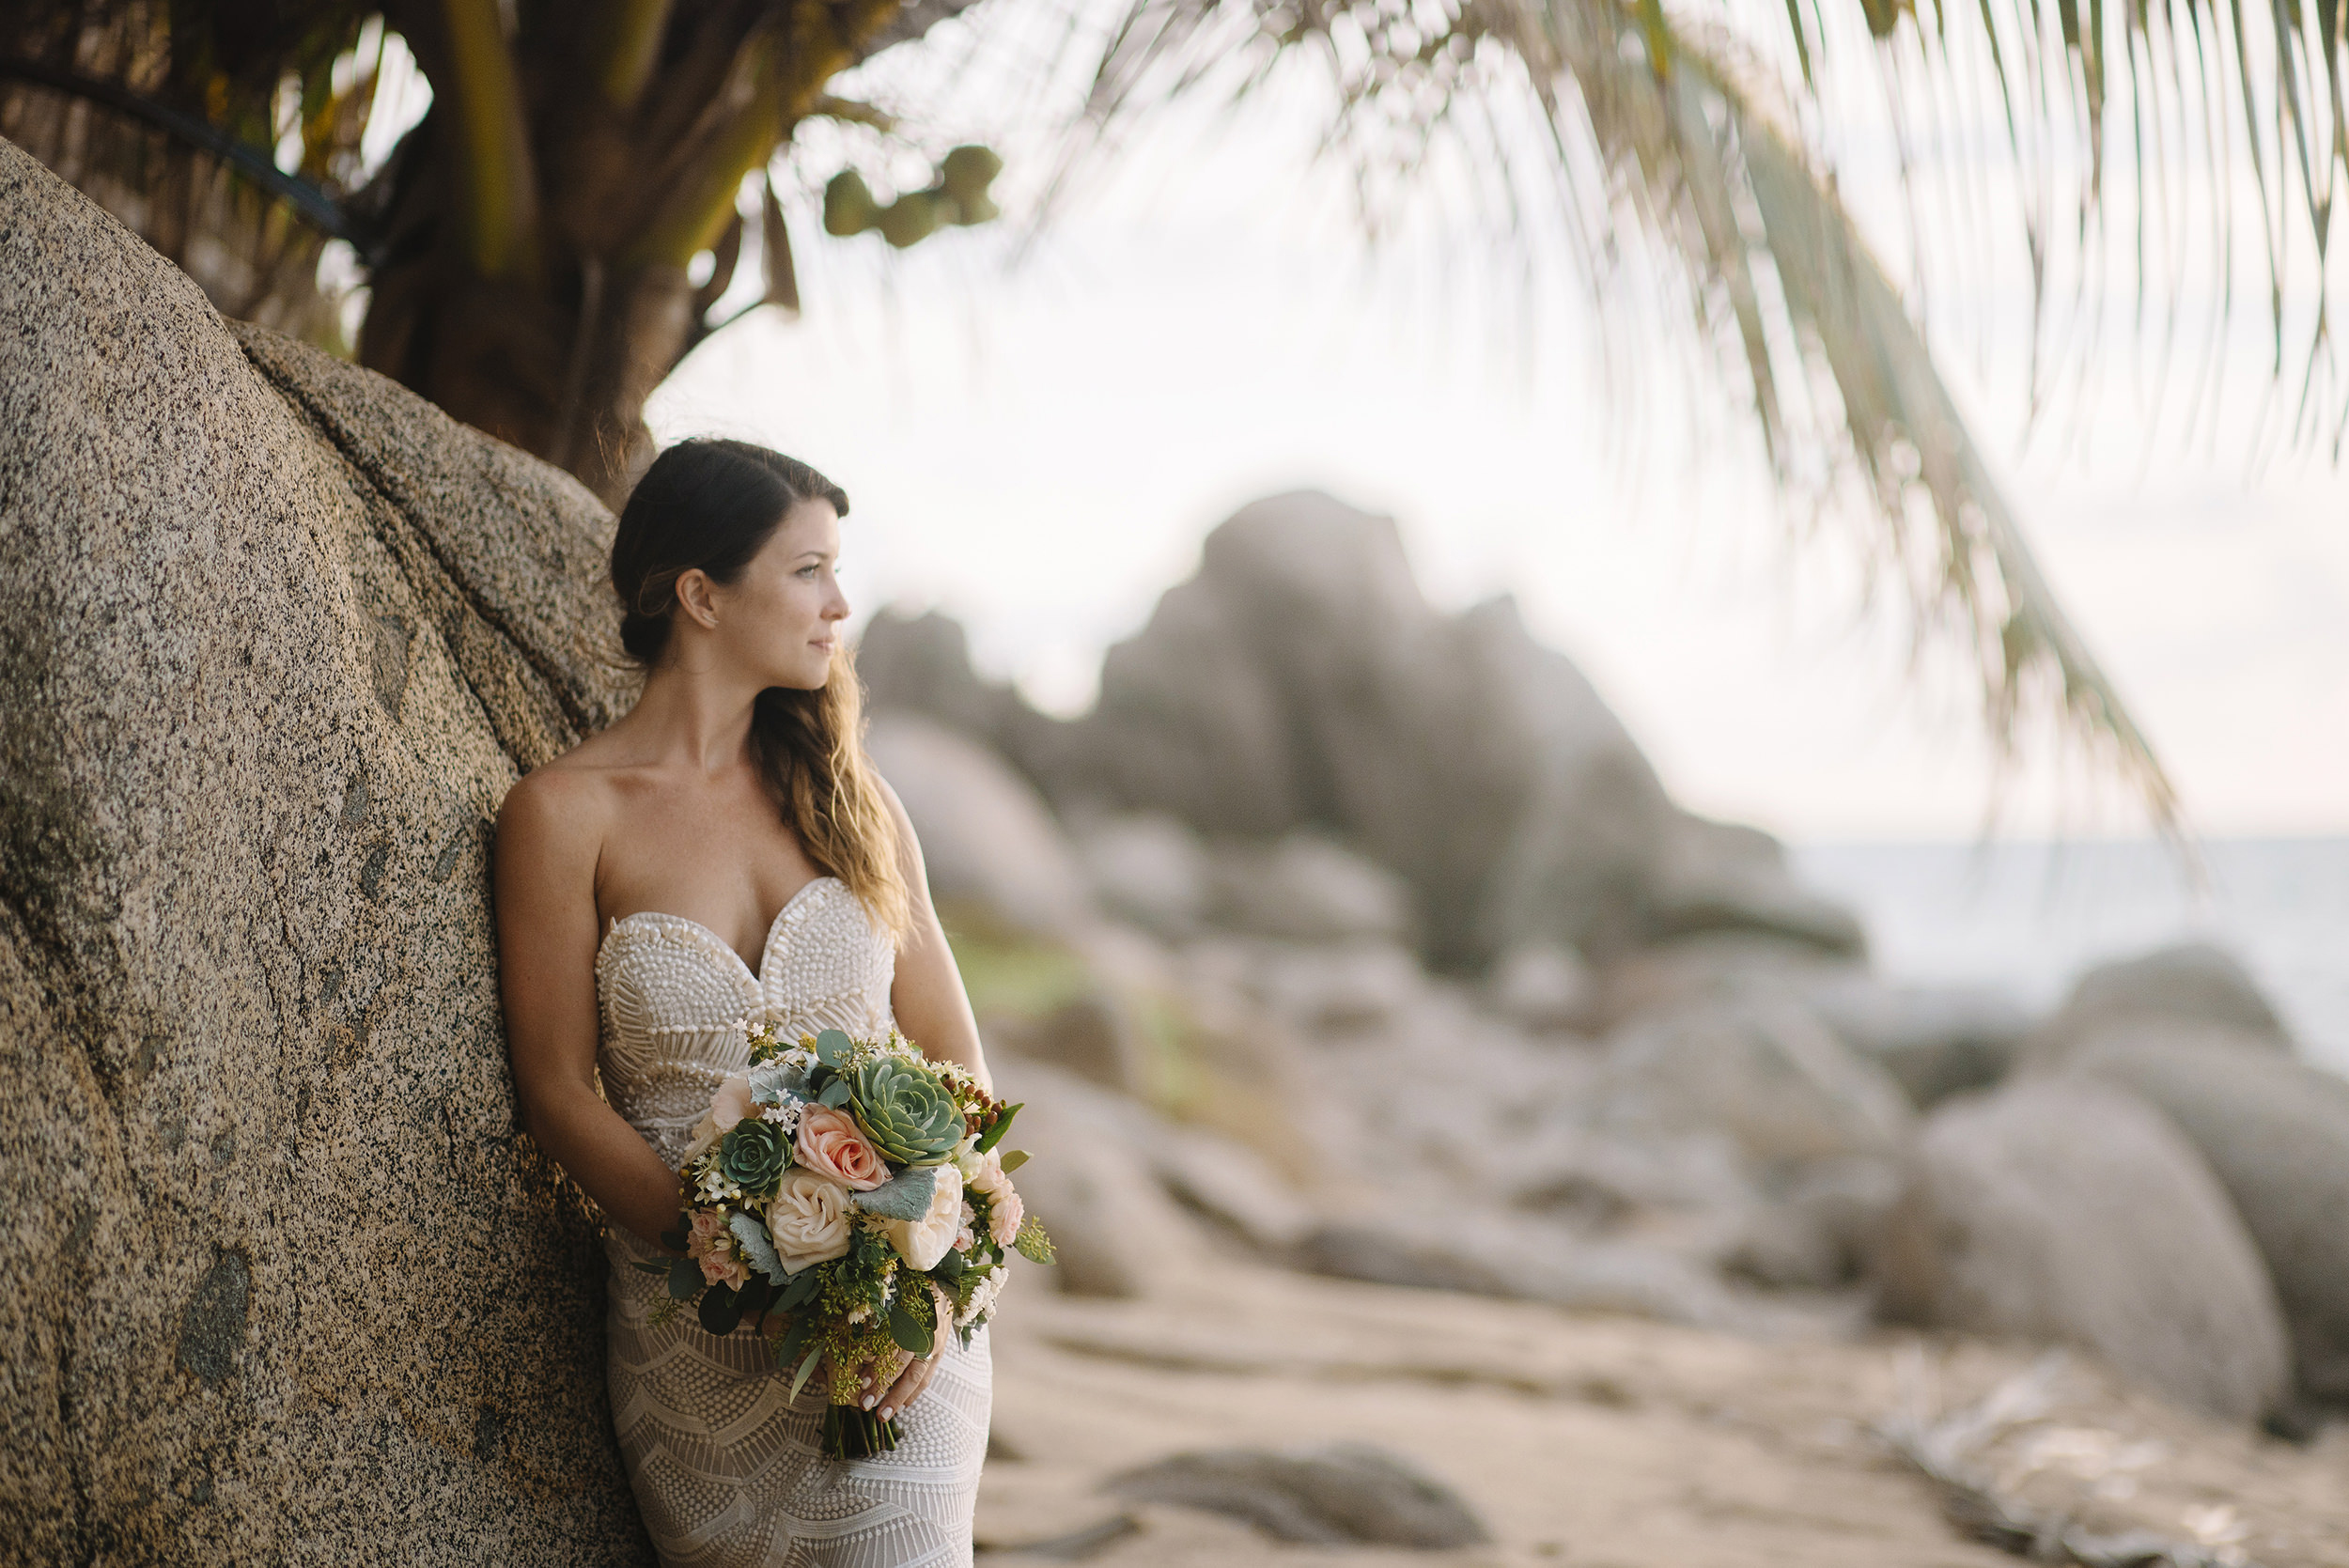 Colby-and-Jess-Intimate-Destination-Wedding-Sayulita-Puerto-Vallarta-Mexico10.jpg